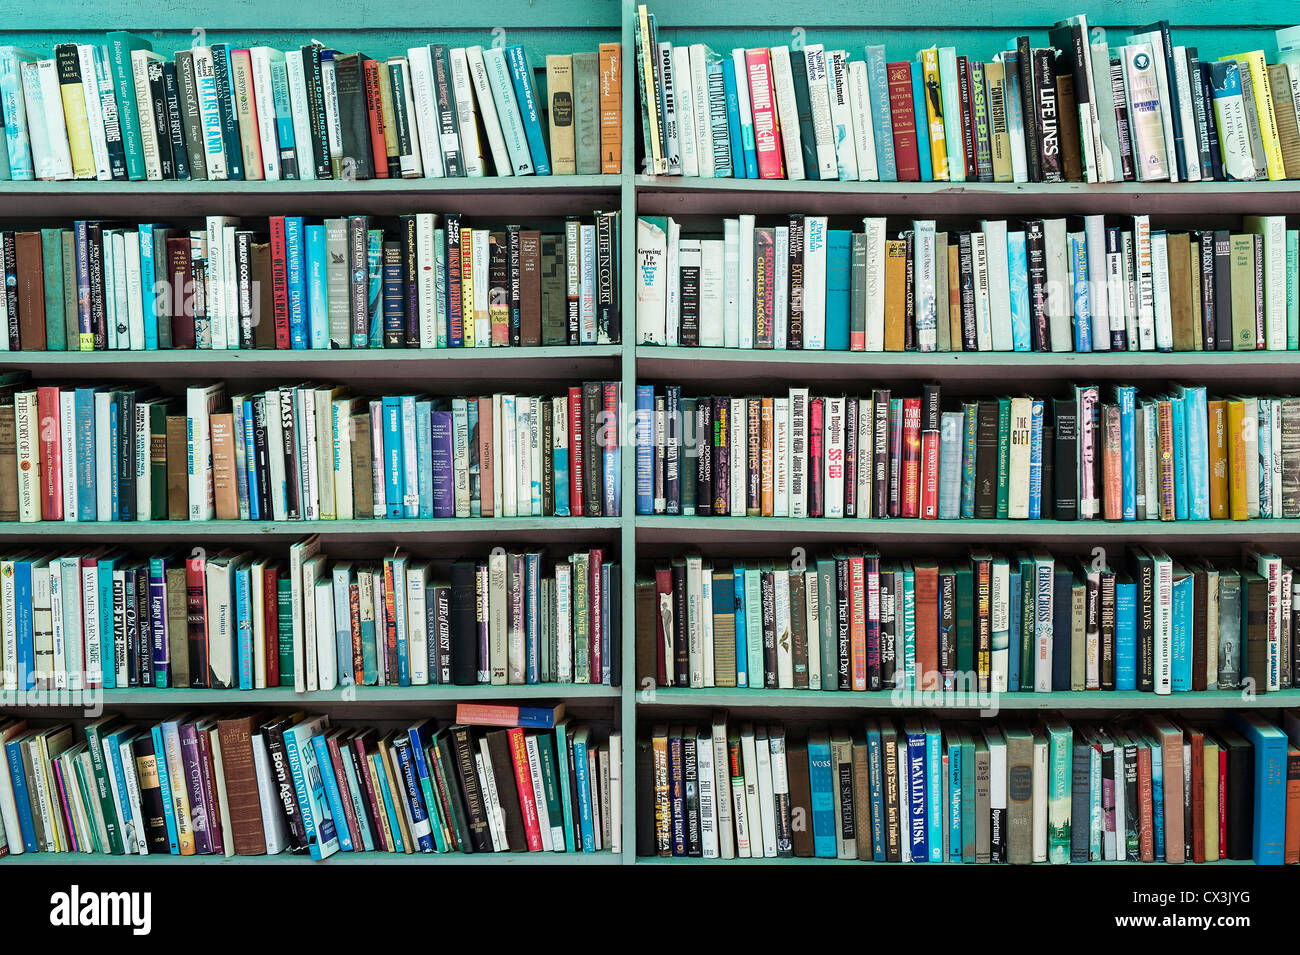 Books on a shelf. - Stock Image